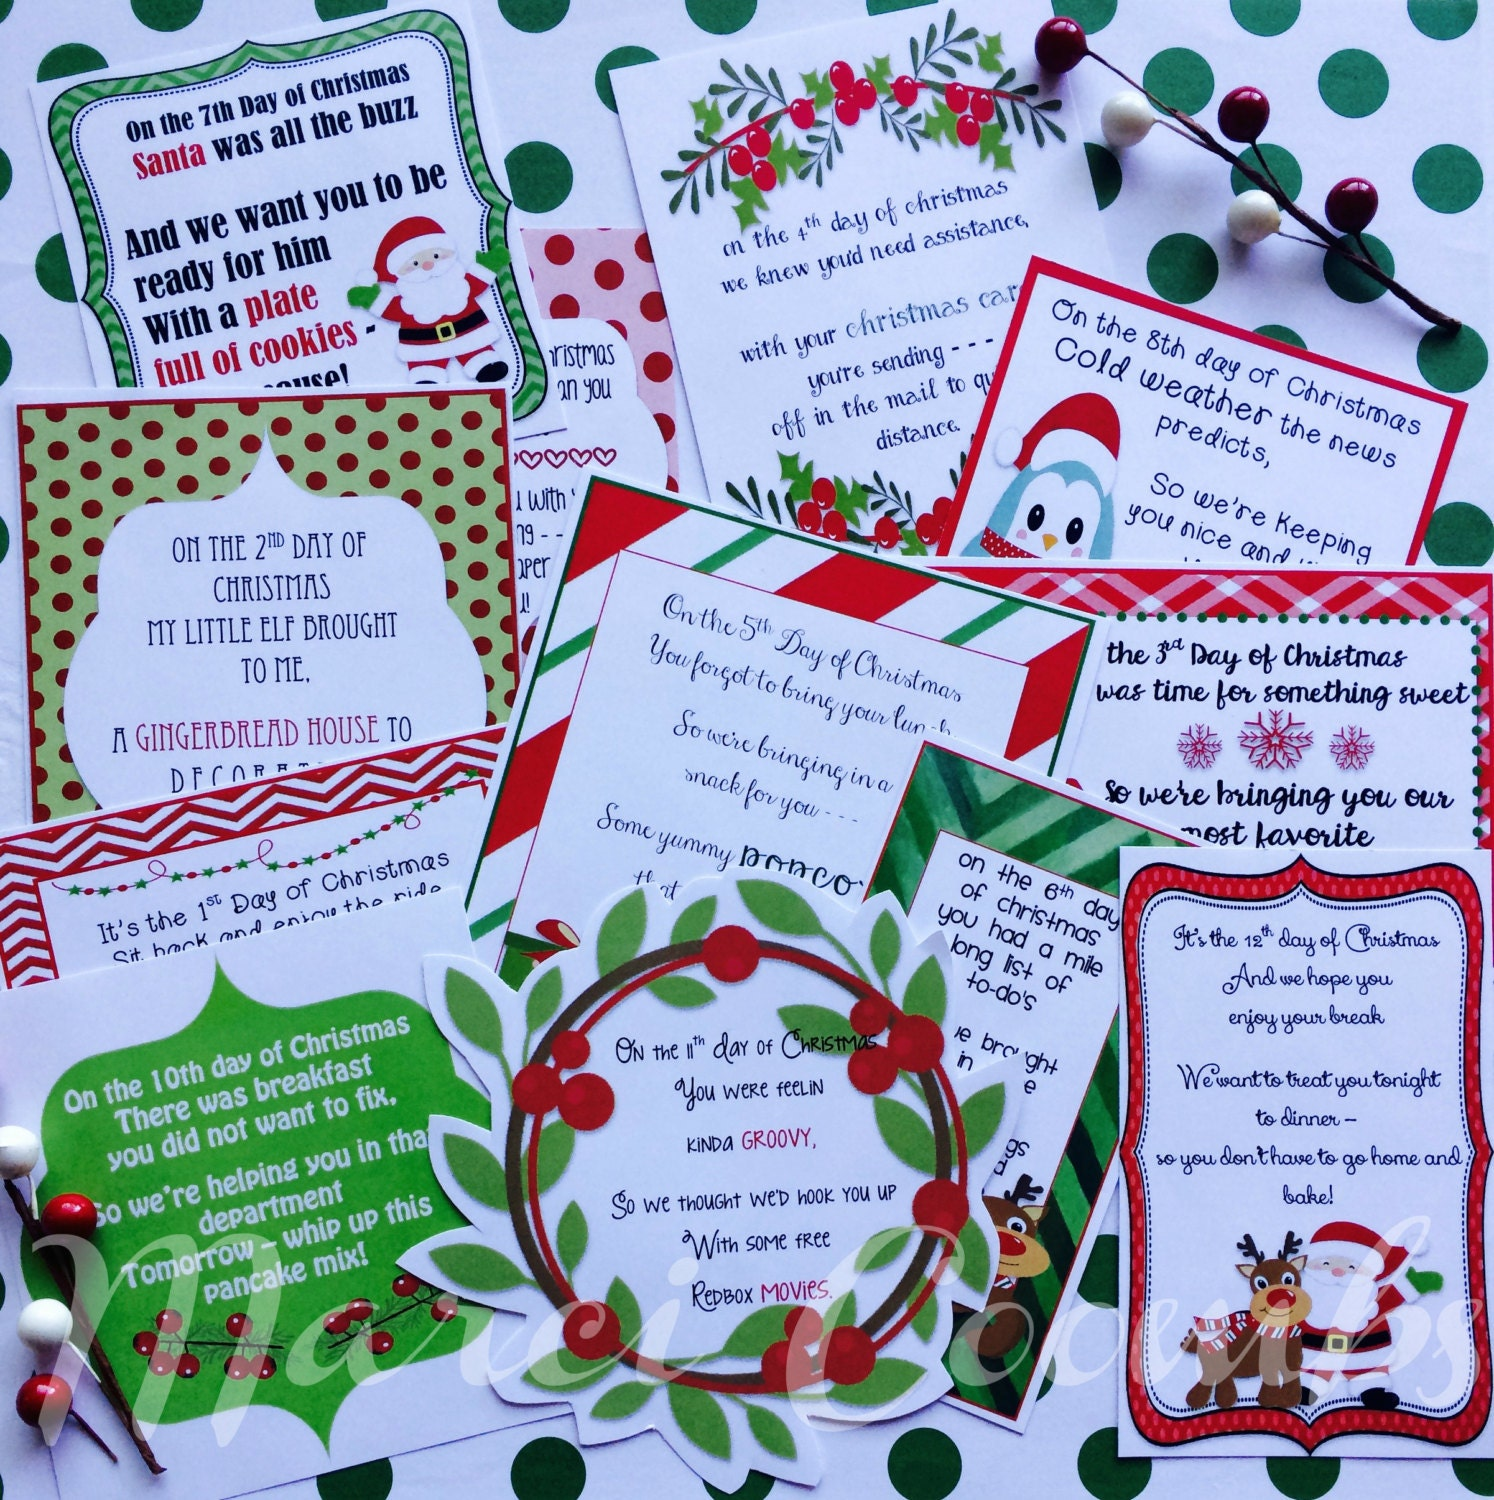 Gift Ideas For The 12 Days Of Christmas: 12 Days Of Christmas Printable Tags Labels For Teachers